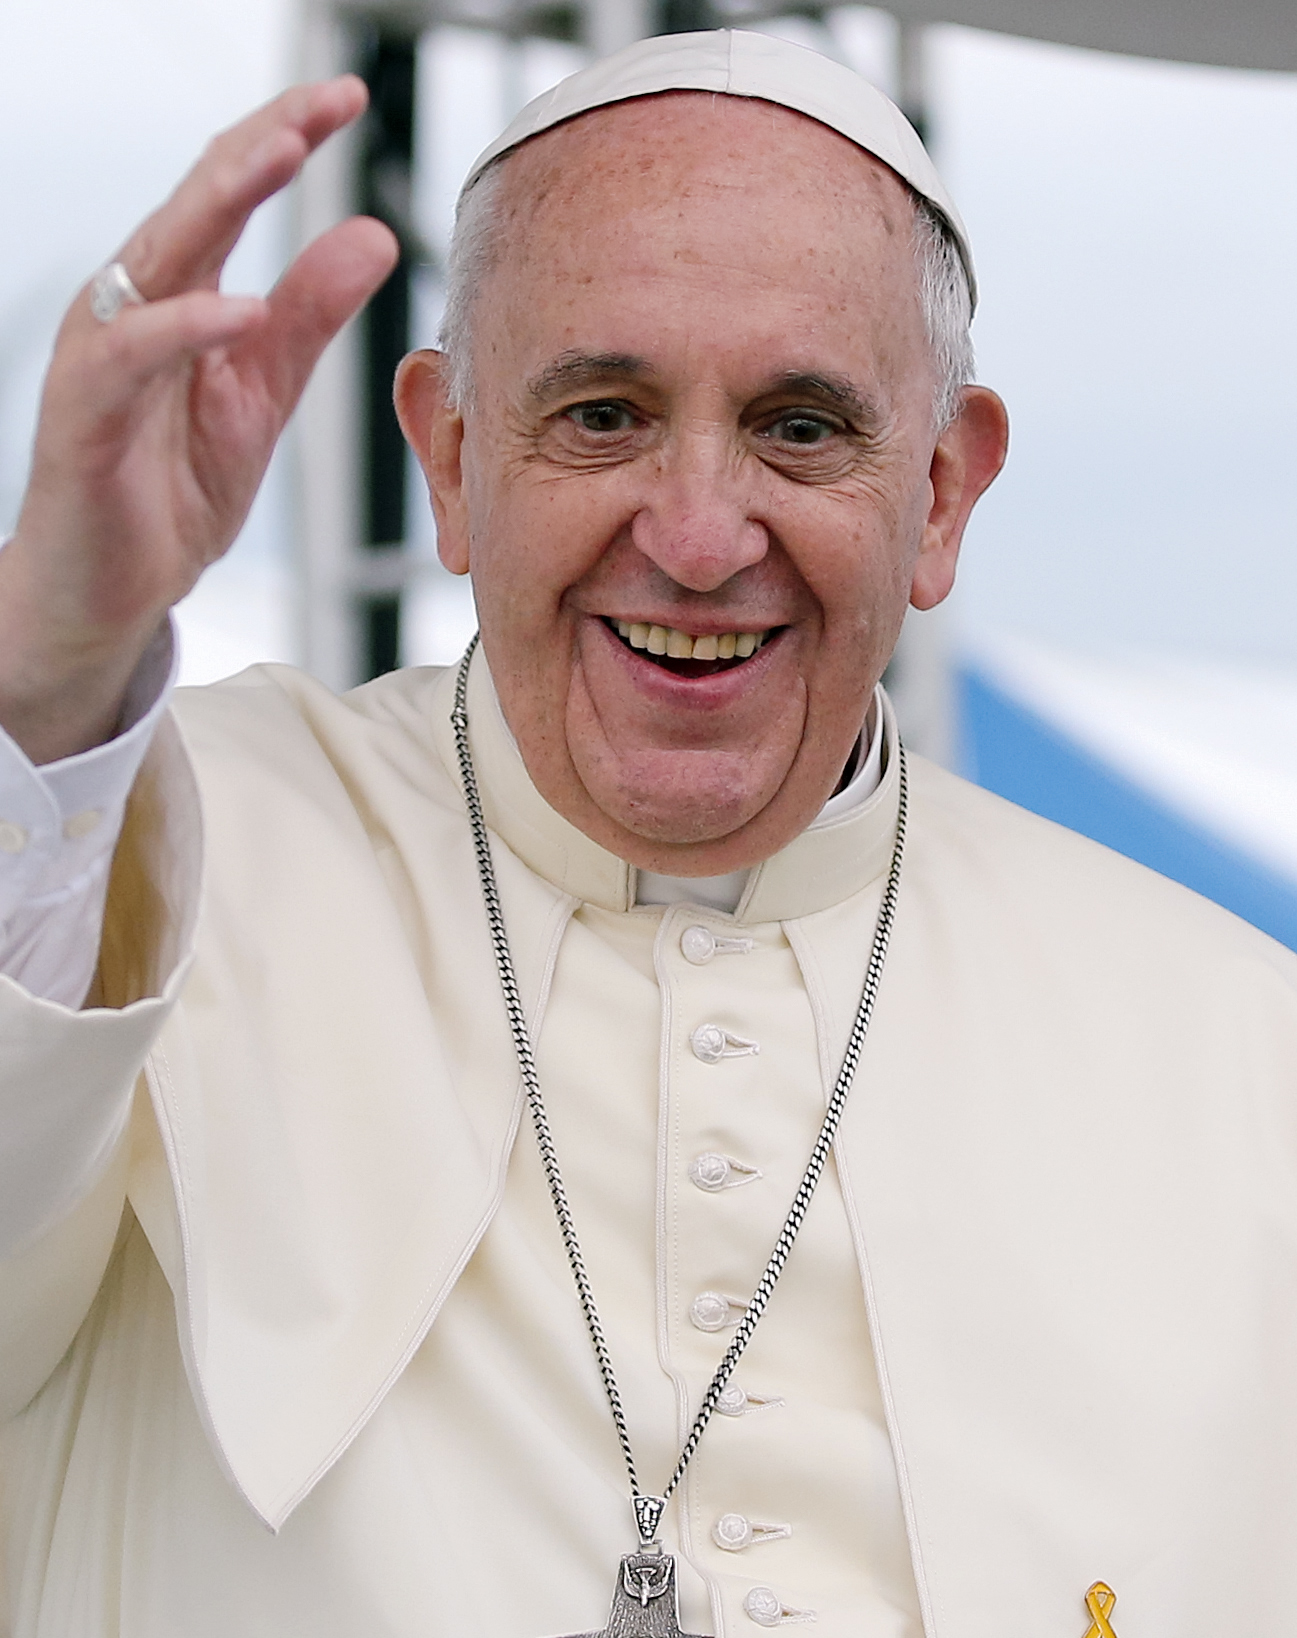 Pope Francis spreads the doctrine of love